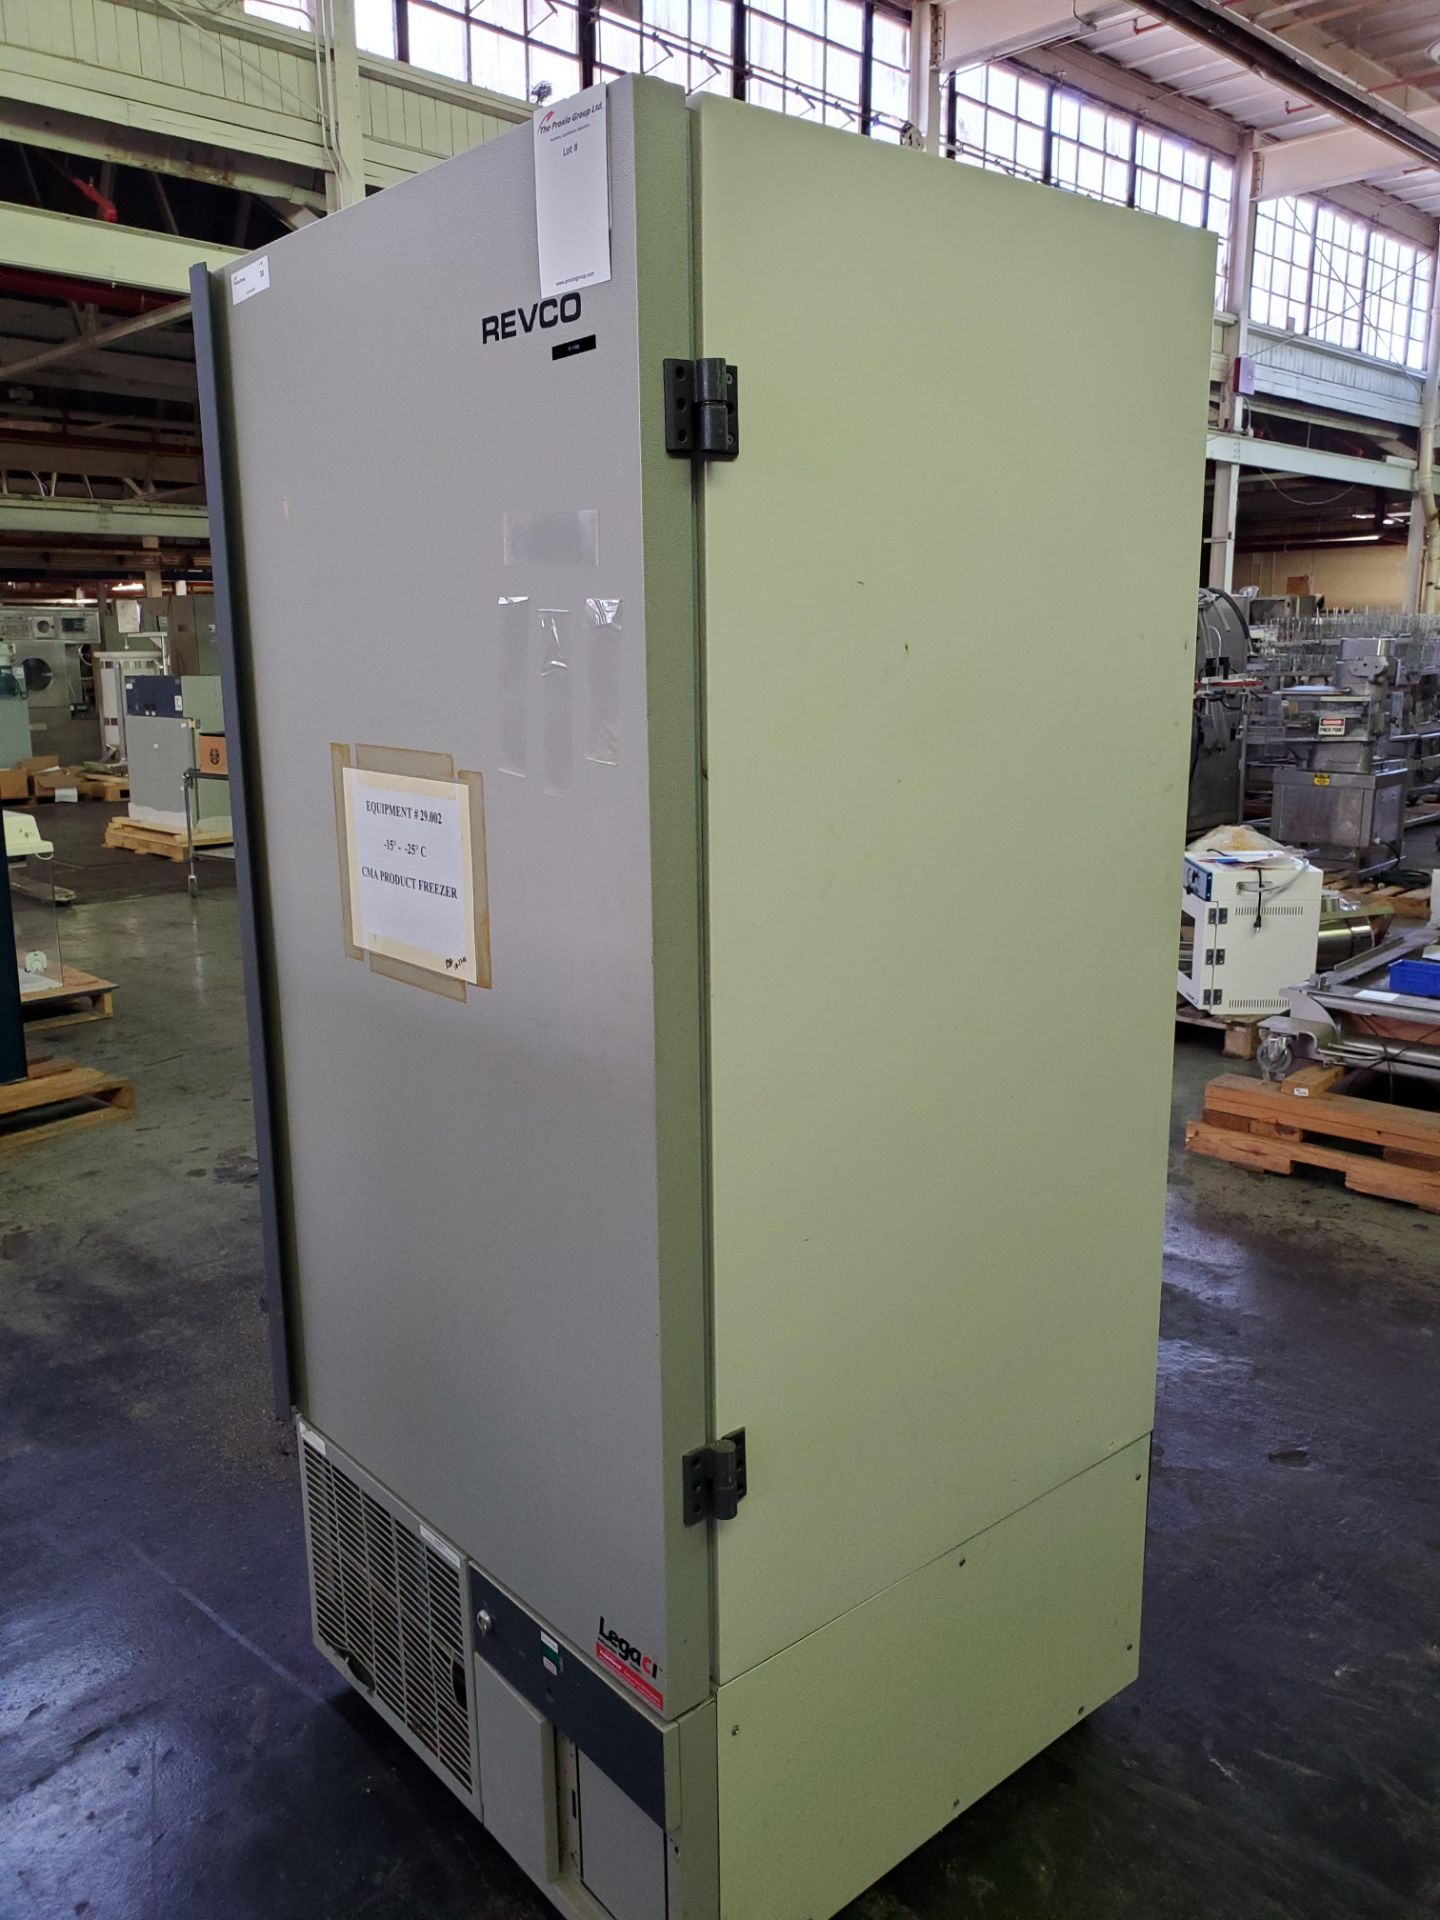 Revco/GS Laboratory Equipment Freezer, model ULT1740-3-A34 - Image 3 of 7